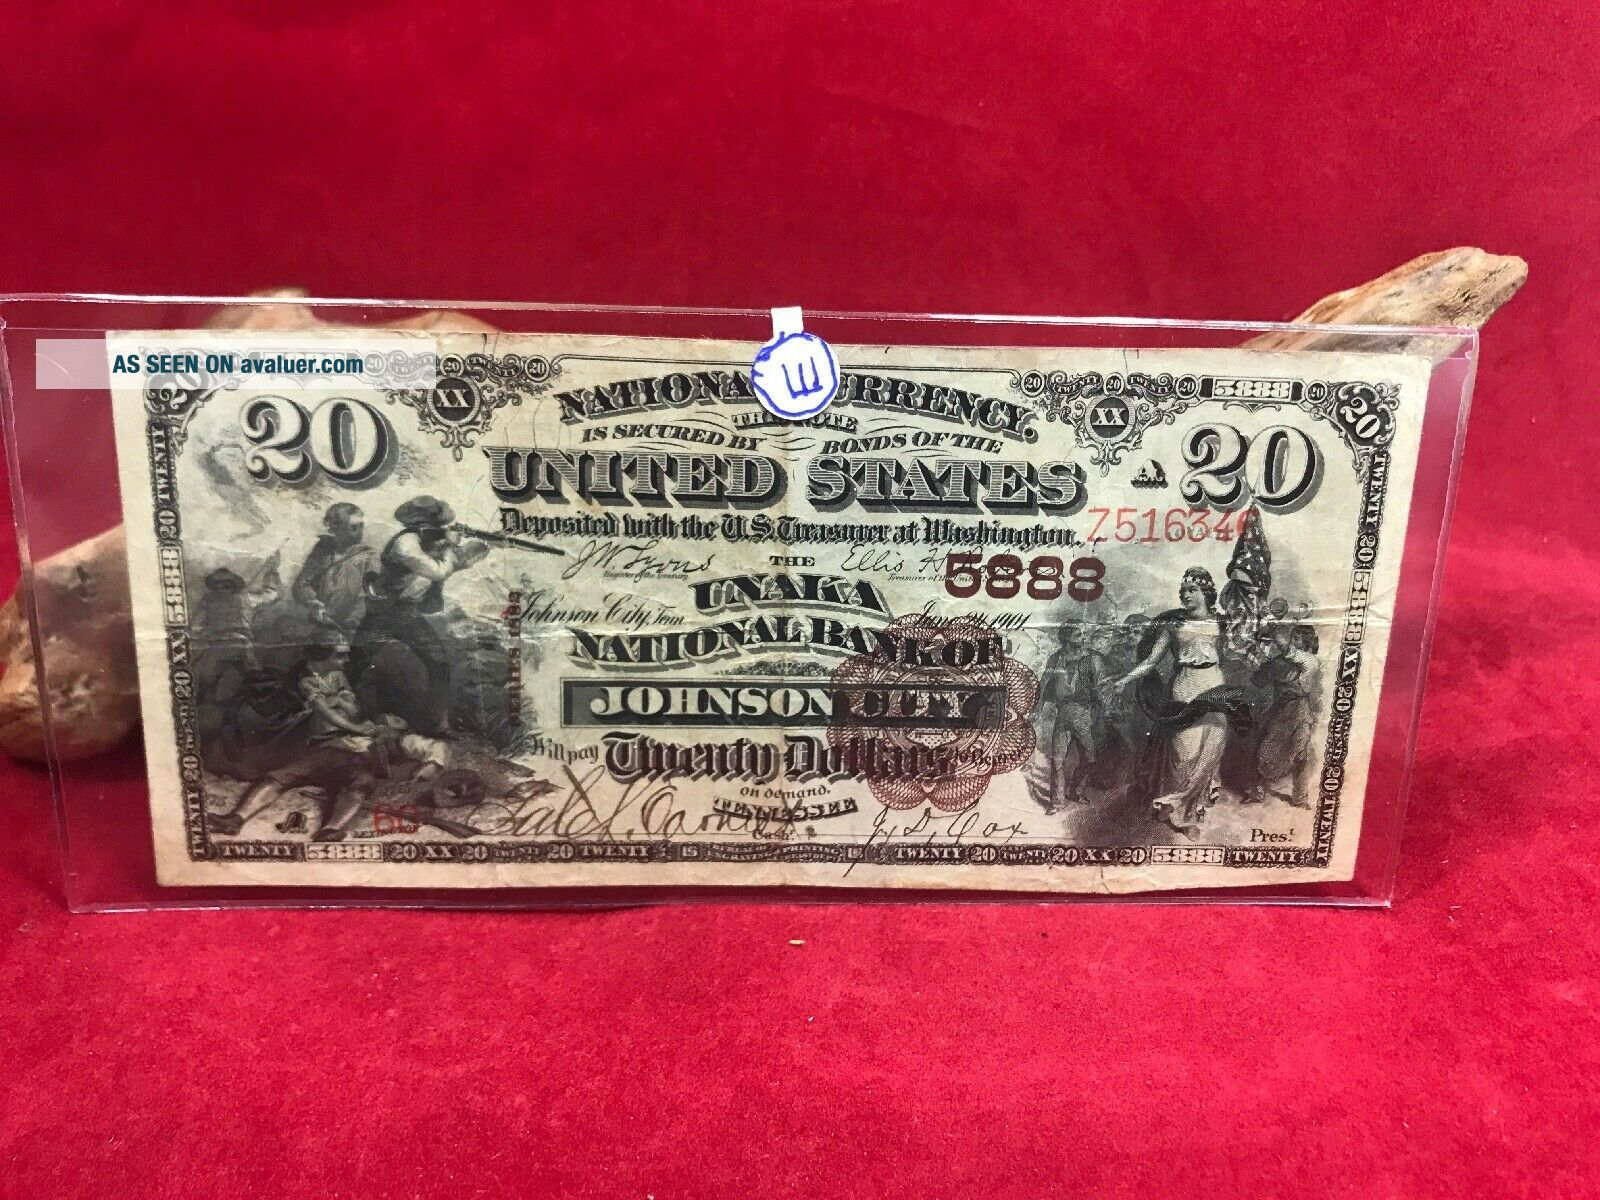 NATIONAL CURRENCY $20 SERIES 1882 THE UNAKA NATIONAL BANK OF JOHNSON CITY (TN)